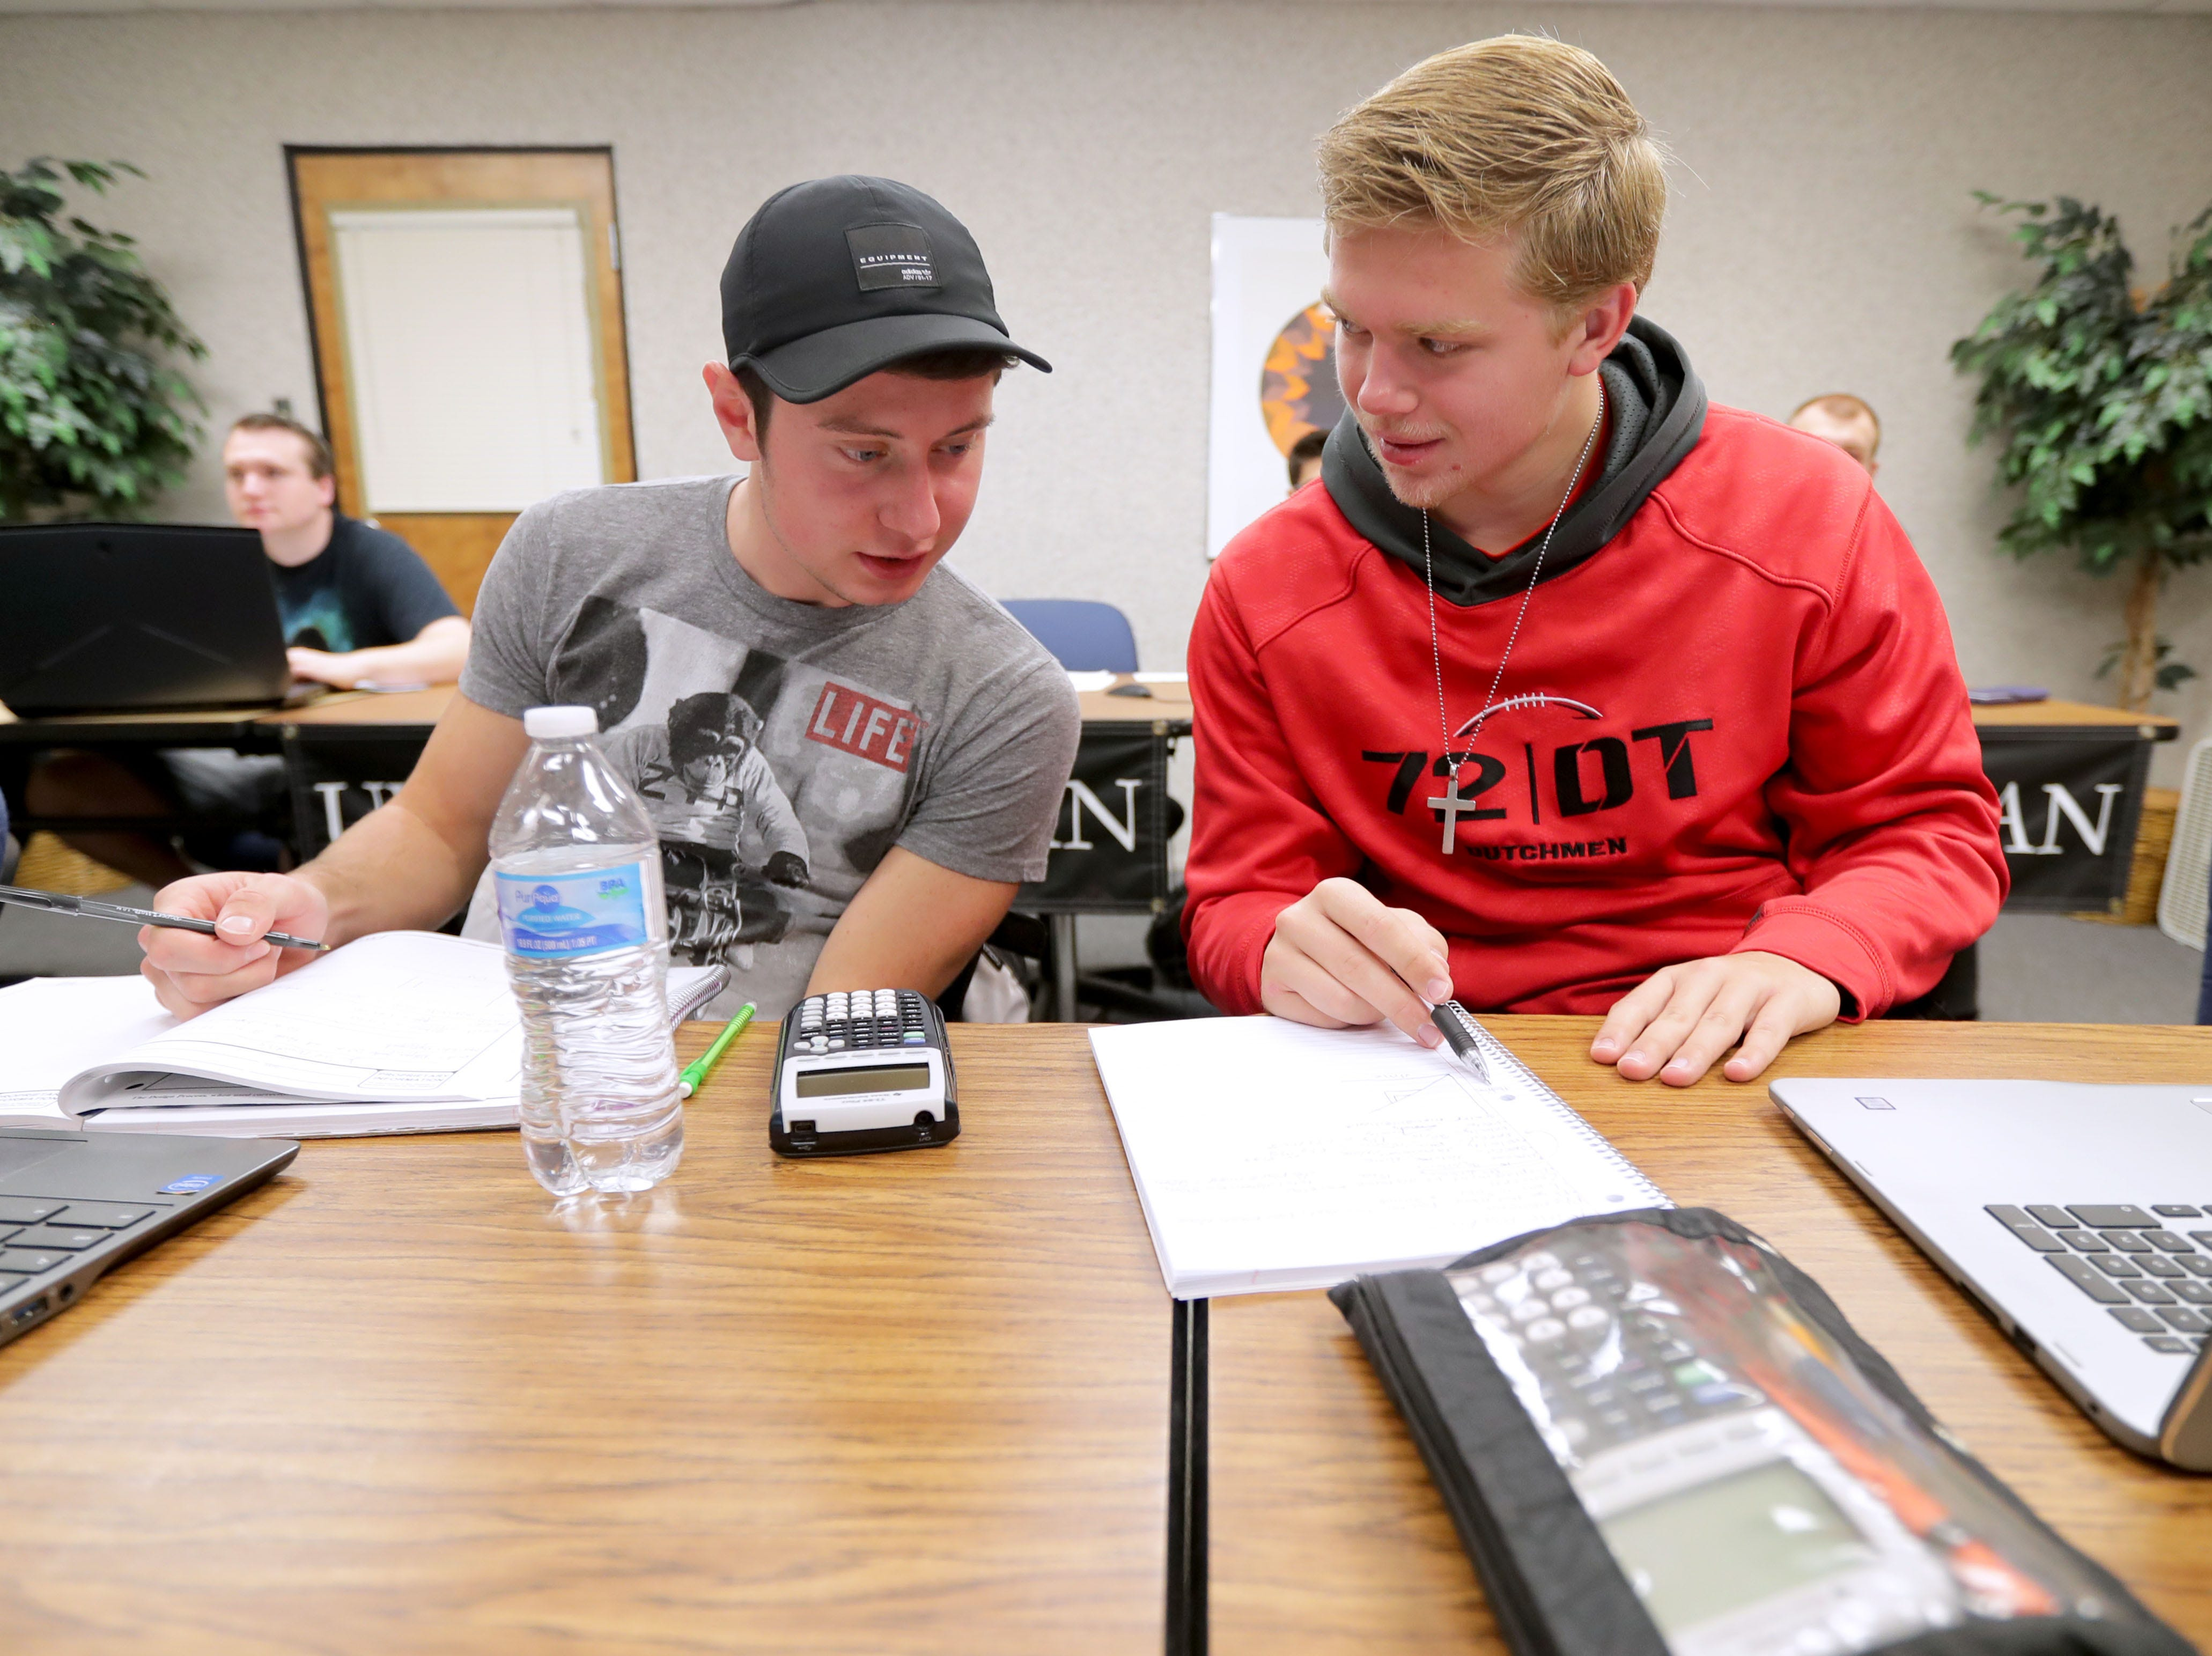 Jacob Eernisse (left), a University of Wisconsin-Green Bay, Sheboygan Campus freshman from Oostburg, and Mitchell Ver Velde, a sophomore from Oostburg, work together during a college physics class. The class was being taught remotely via a video conference by Thomas Hall from the University of Wisconsin-Whitewater at Rock County campus.